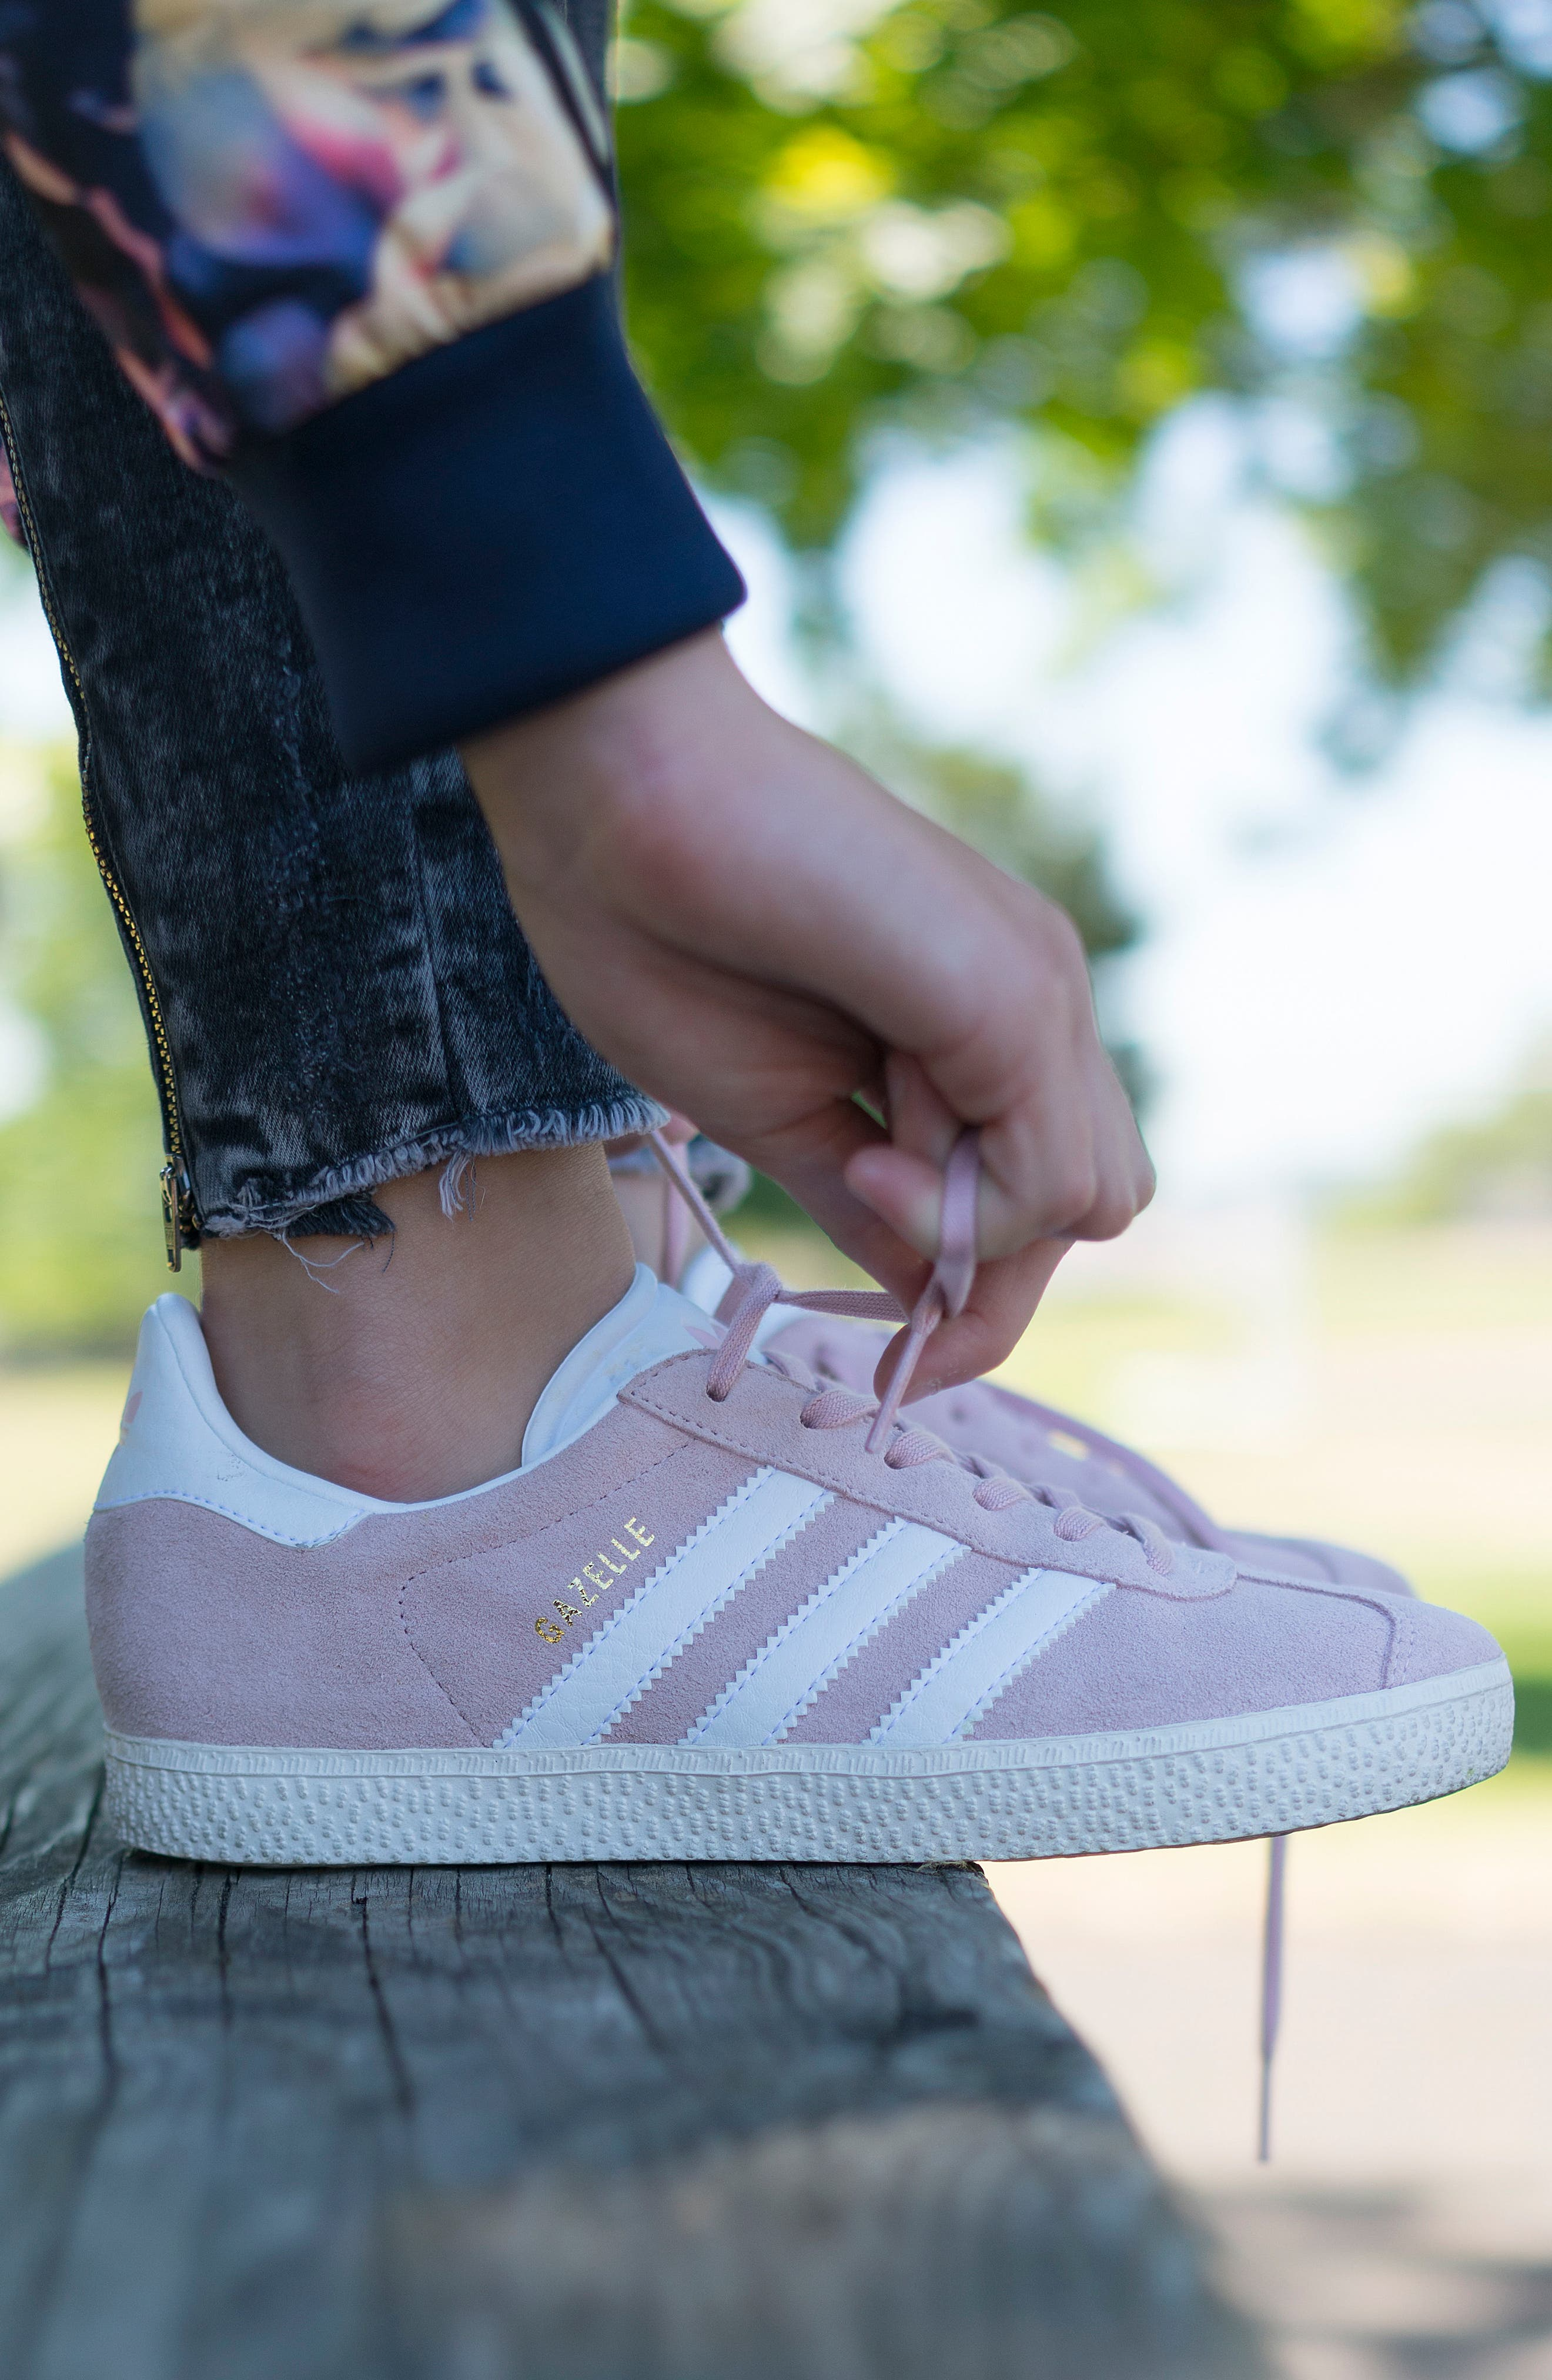 Gazelle Sneaker,                             Alternate thumbnail 7, color,                             Icy Pink/ White/ Gold